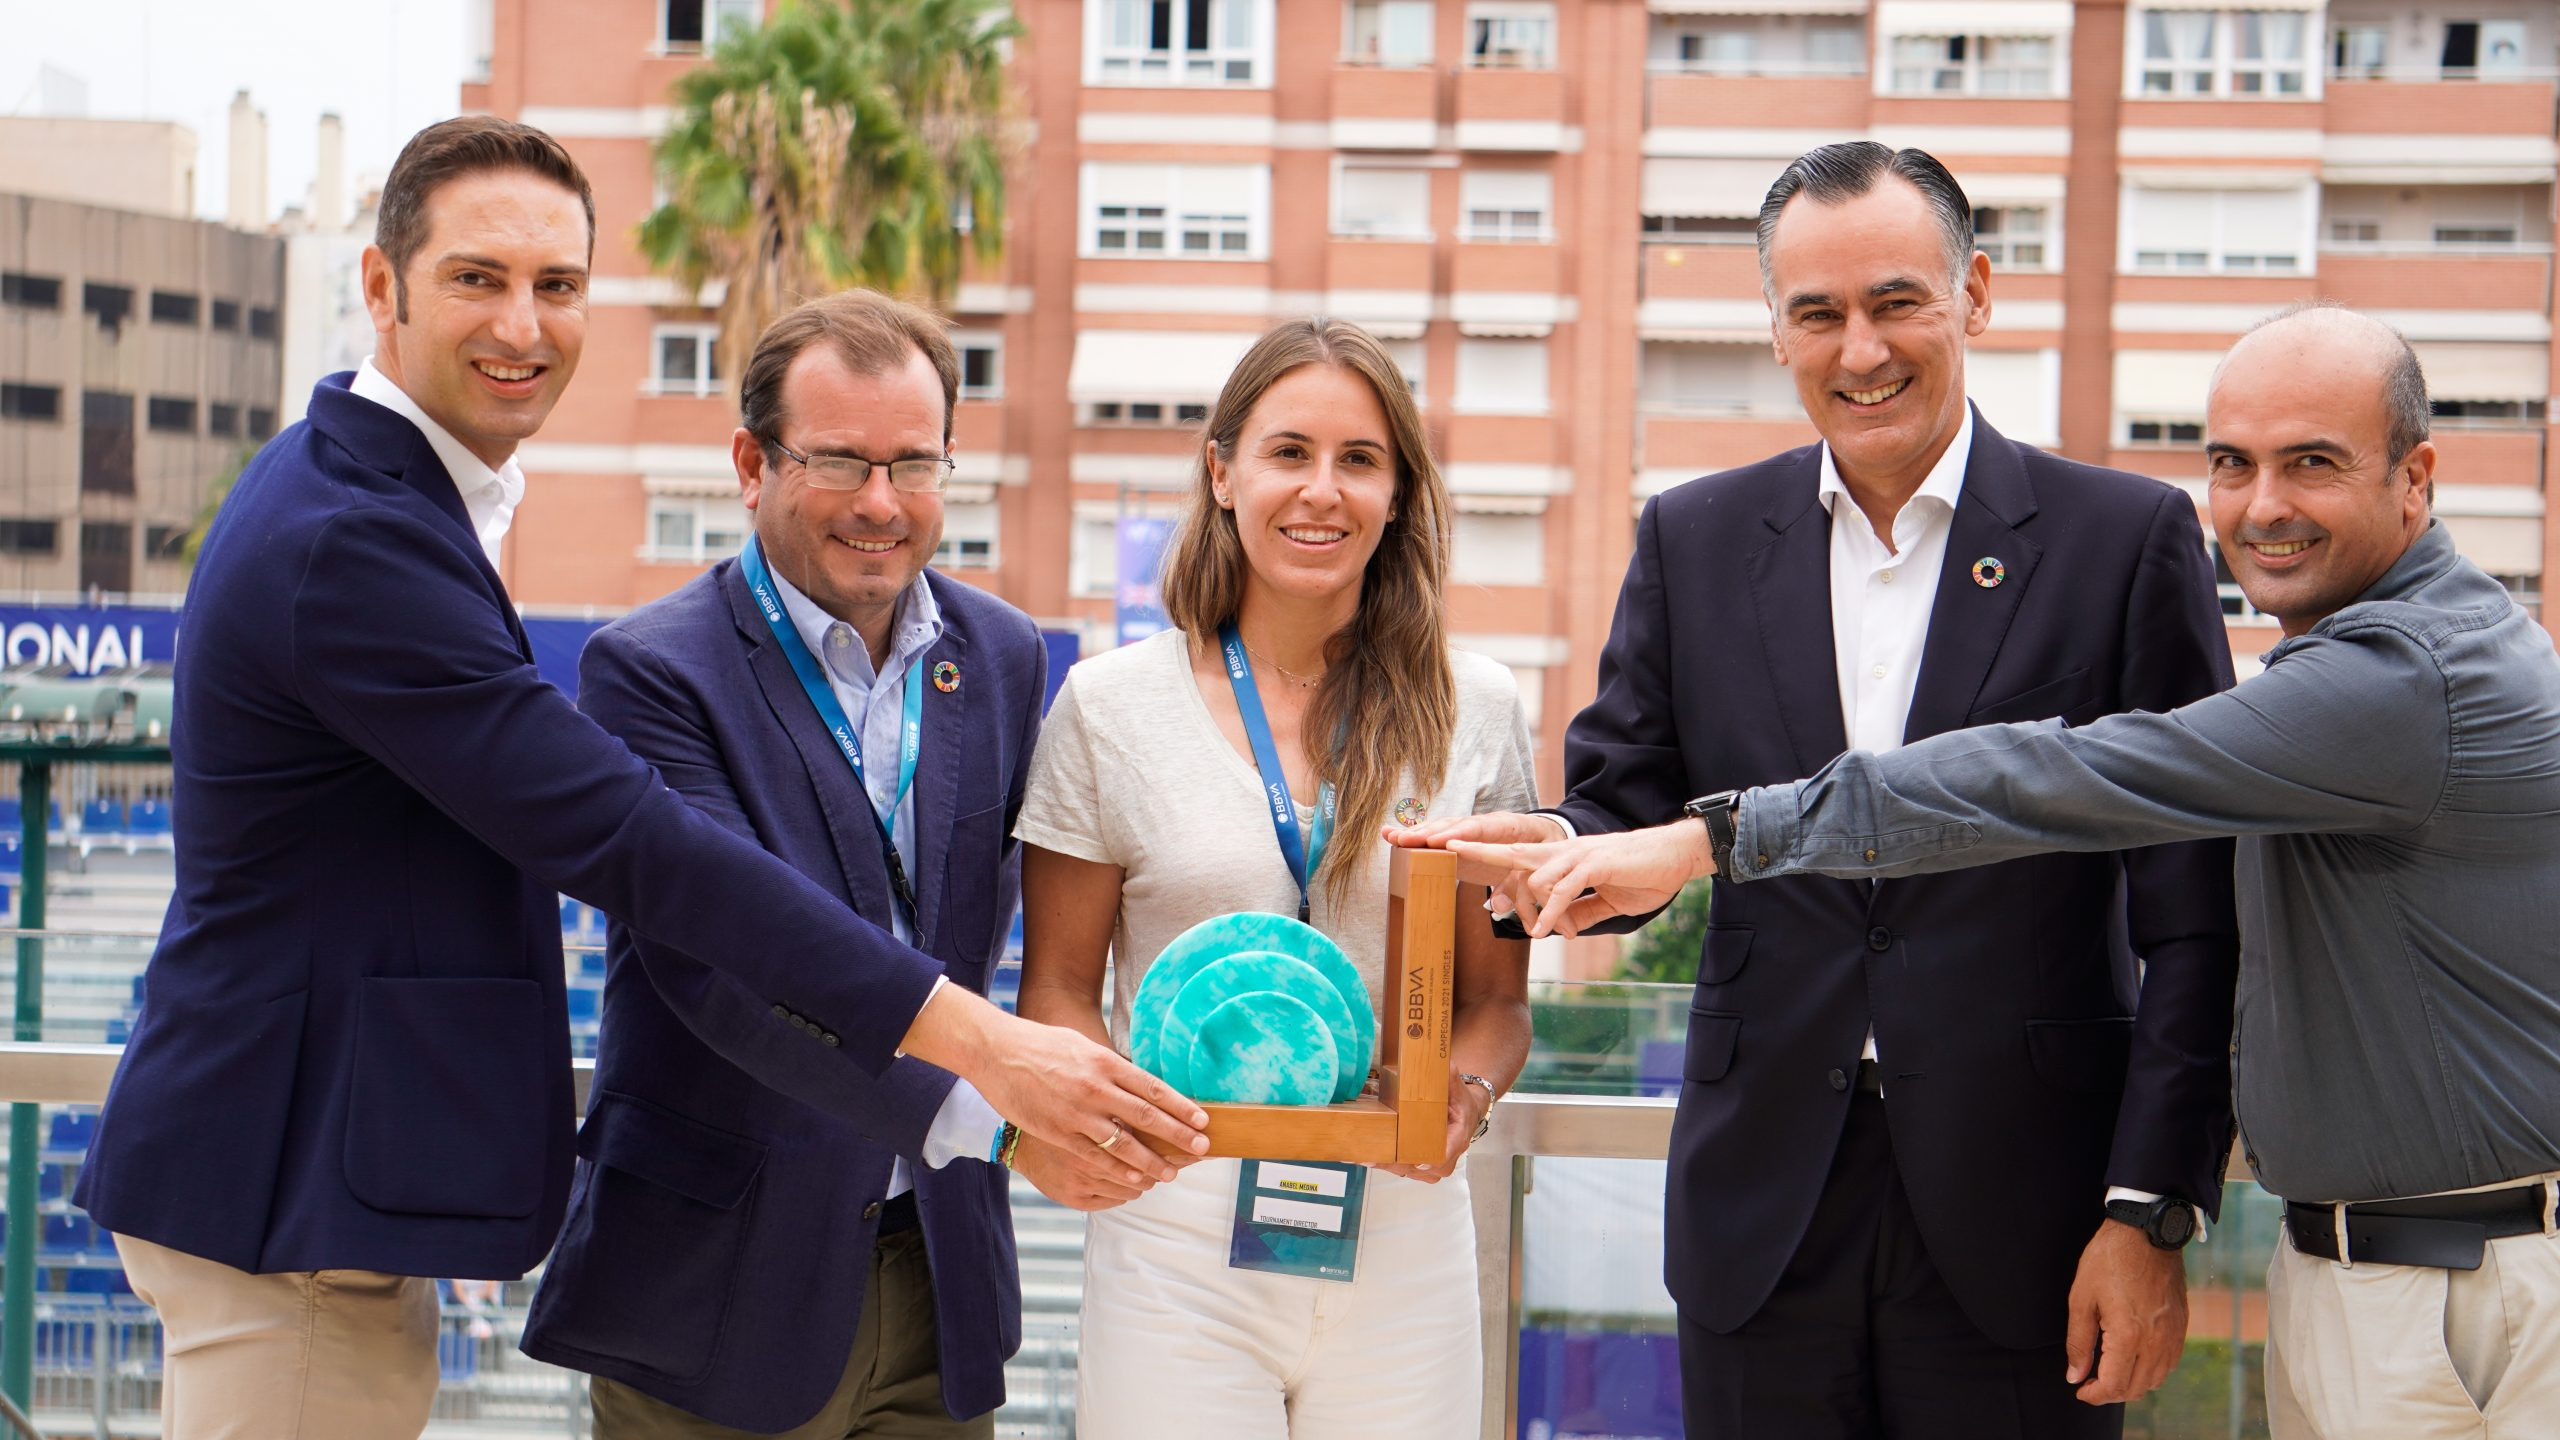 THE BBVA INTERNATIONAL OPEN OF VALENCIA WILL BECOME THE FIRST TOURNAMENT ON THE CALENDAR TO OFFSET ITS ENTIRE CARBON FOOTPRINT